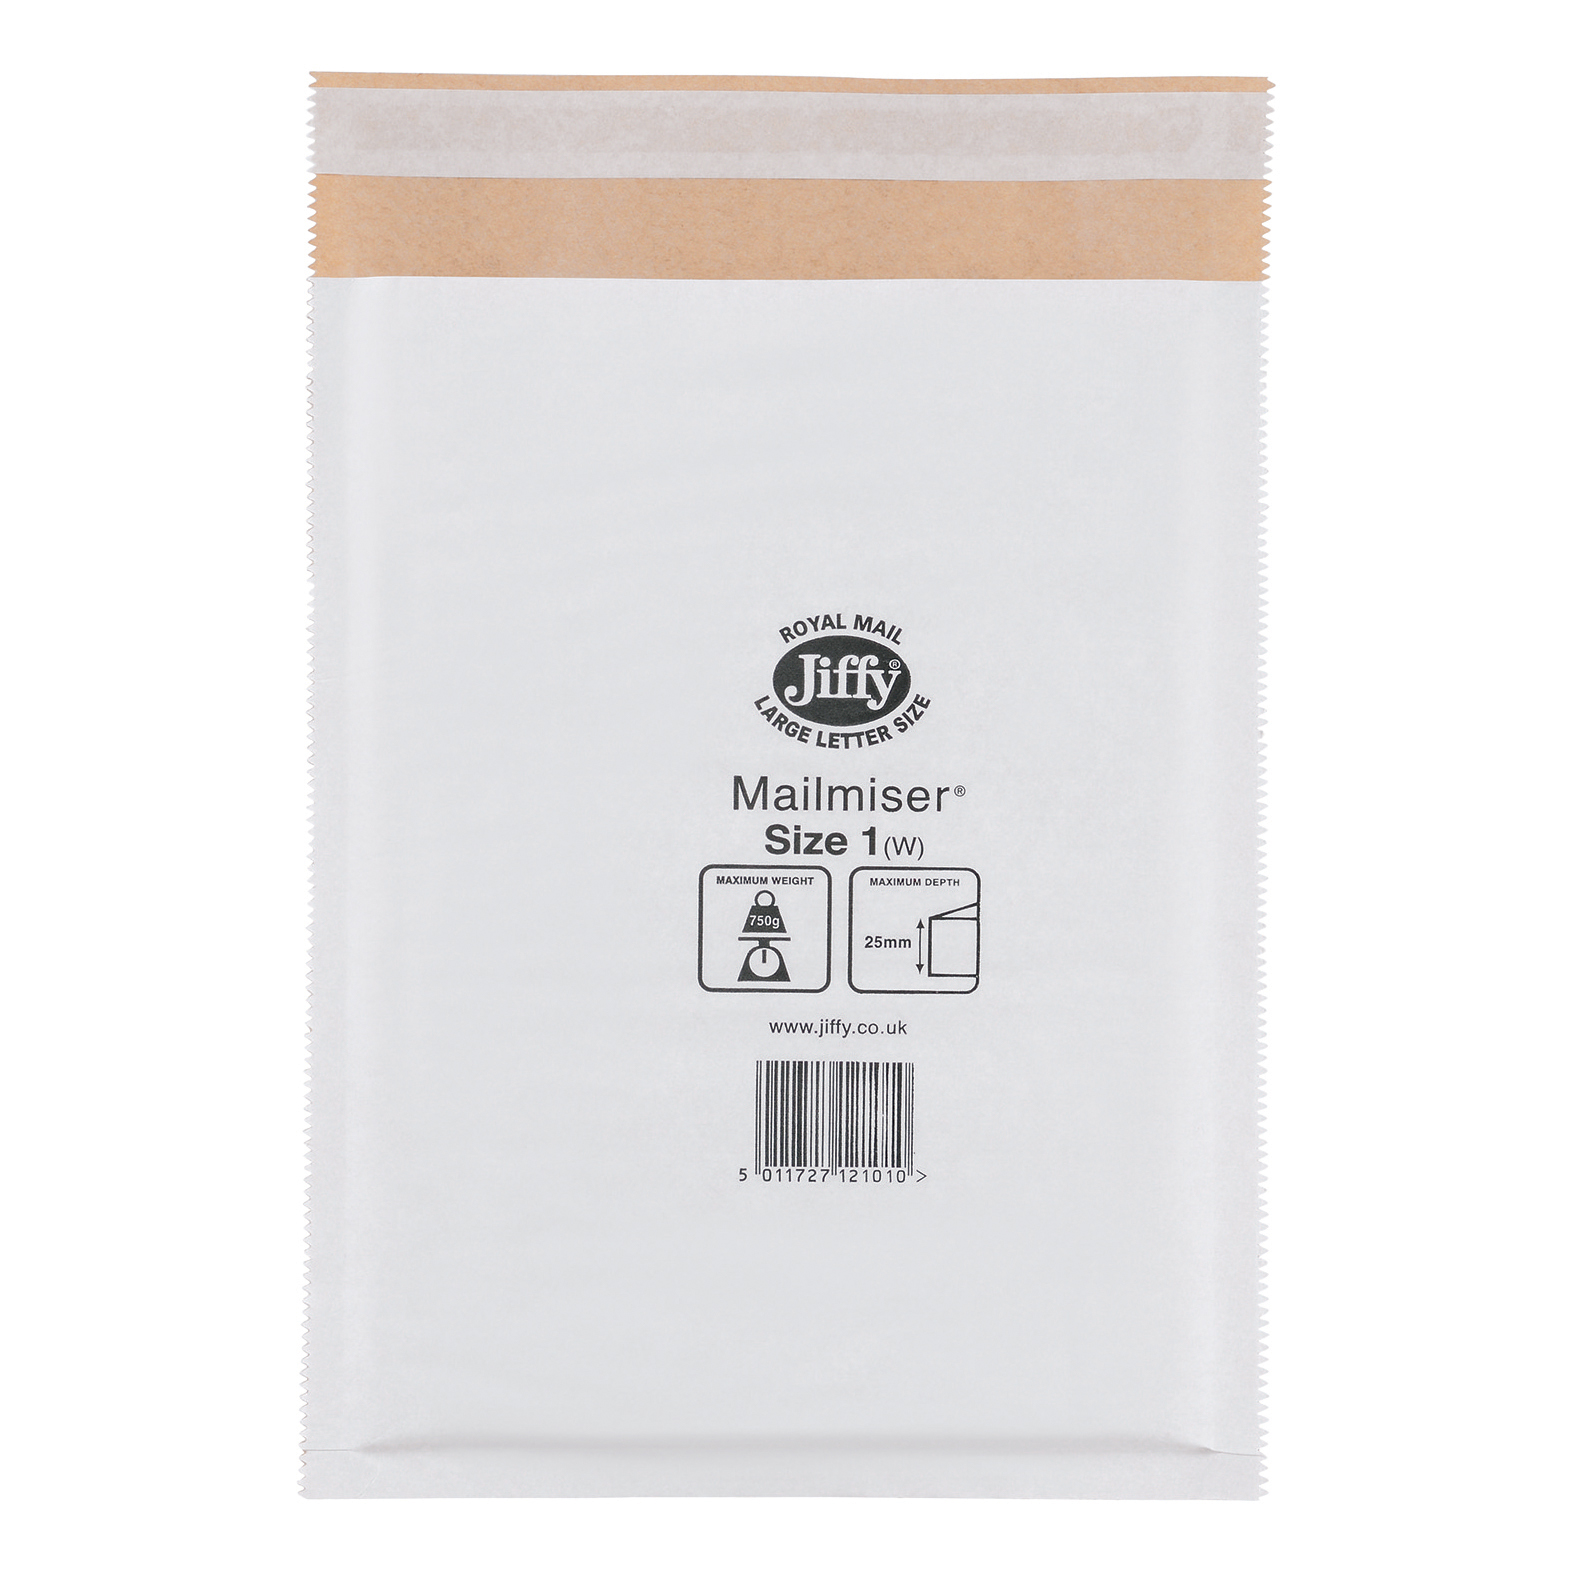 Jiffy Mailmiser Protective Envelopes Bubble-lined Size 1 P&S 170x245mm White Ref JMM-WH-1 Pack 100